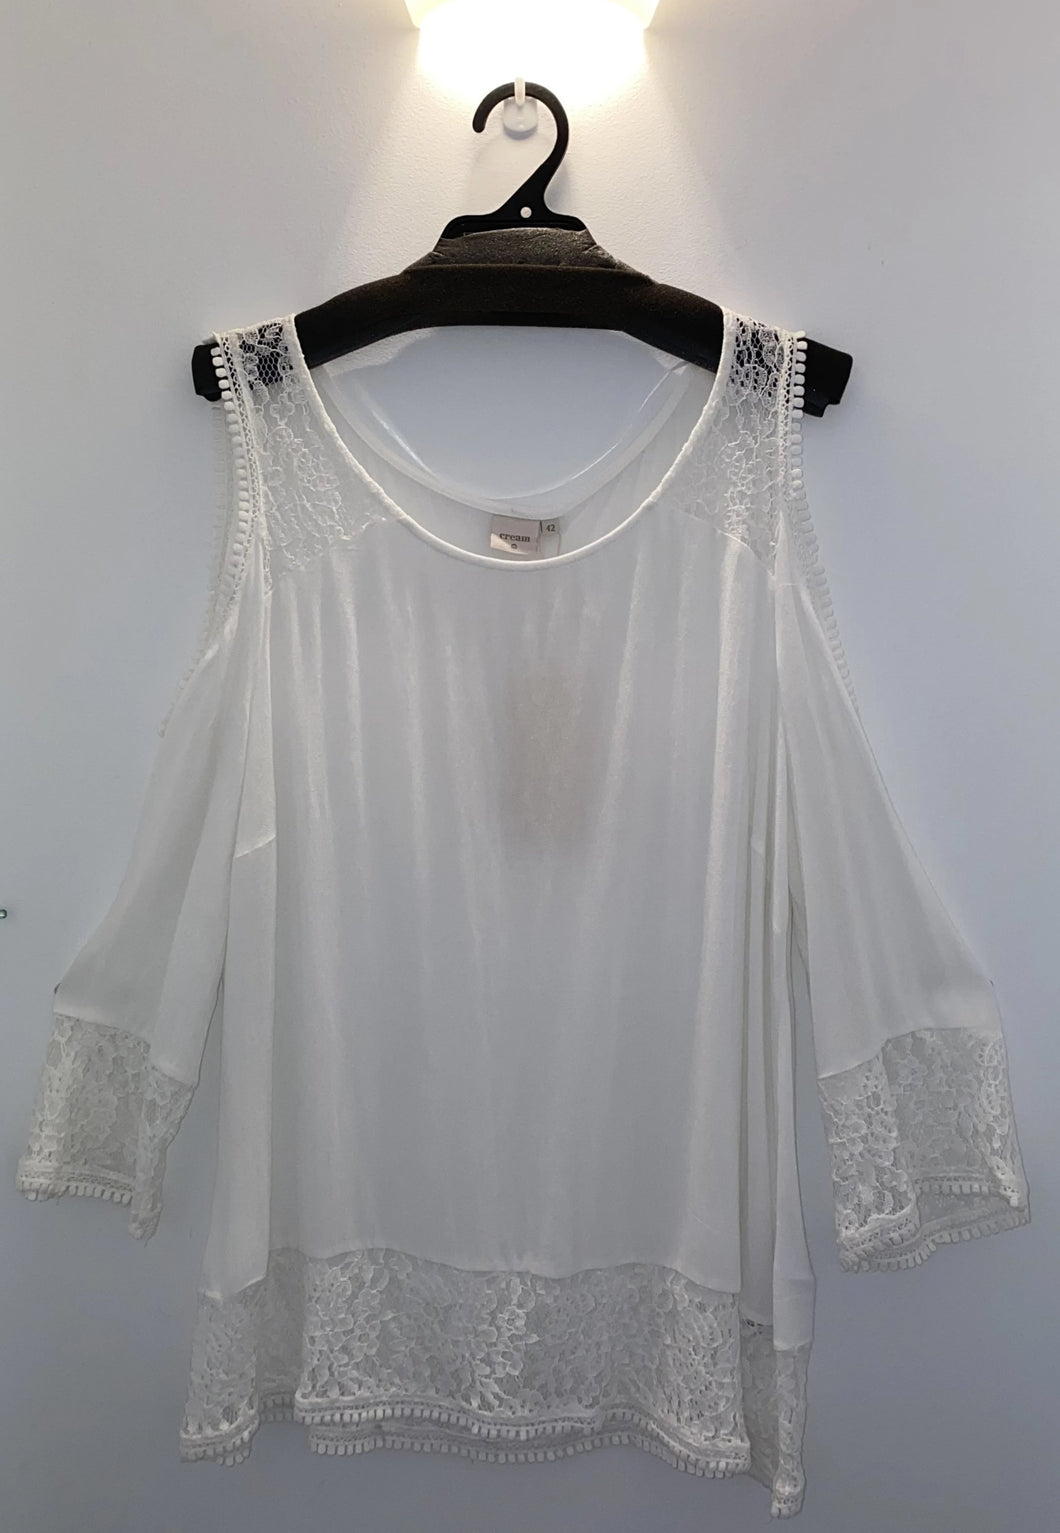 SALE Cream White Cold Shoulder Top - Sizes 14, 16.